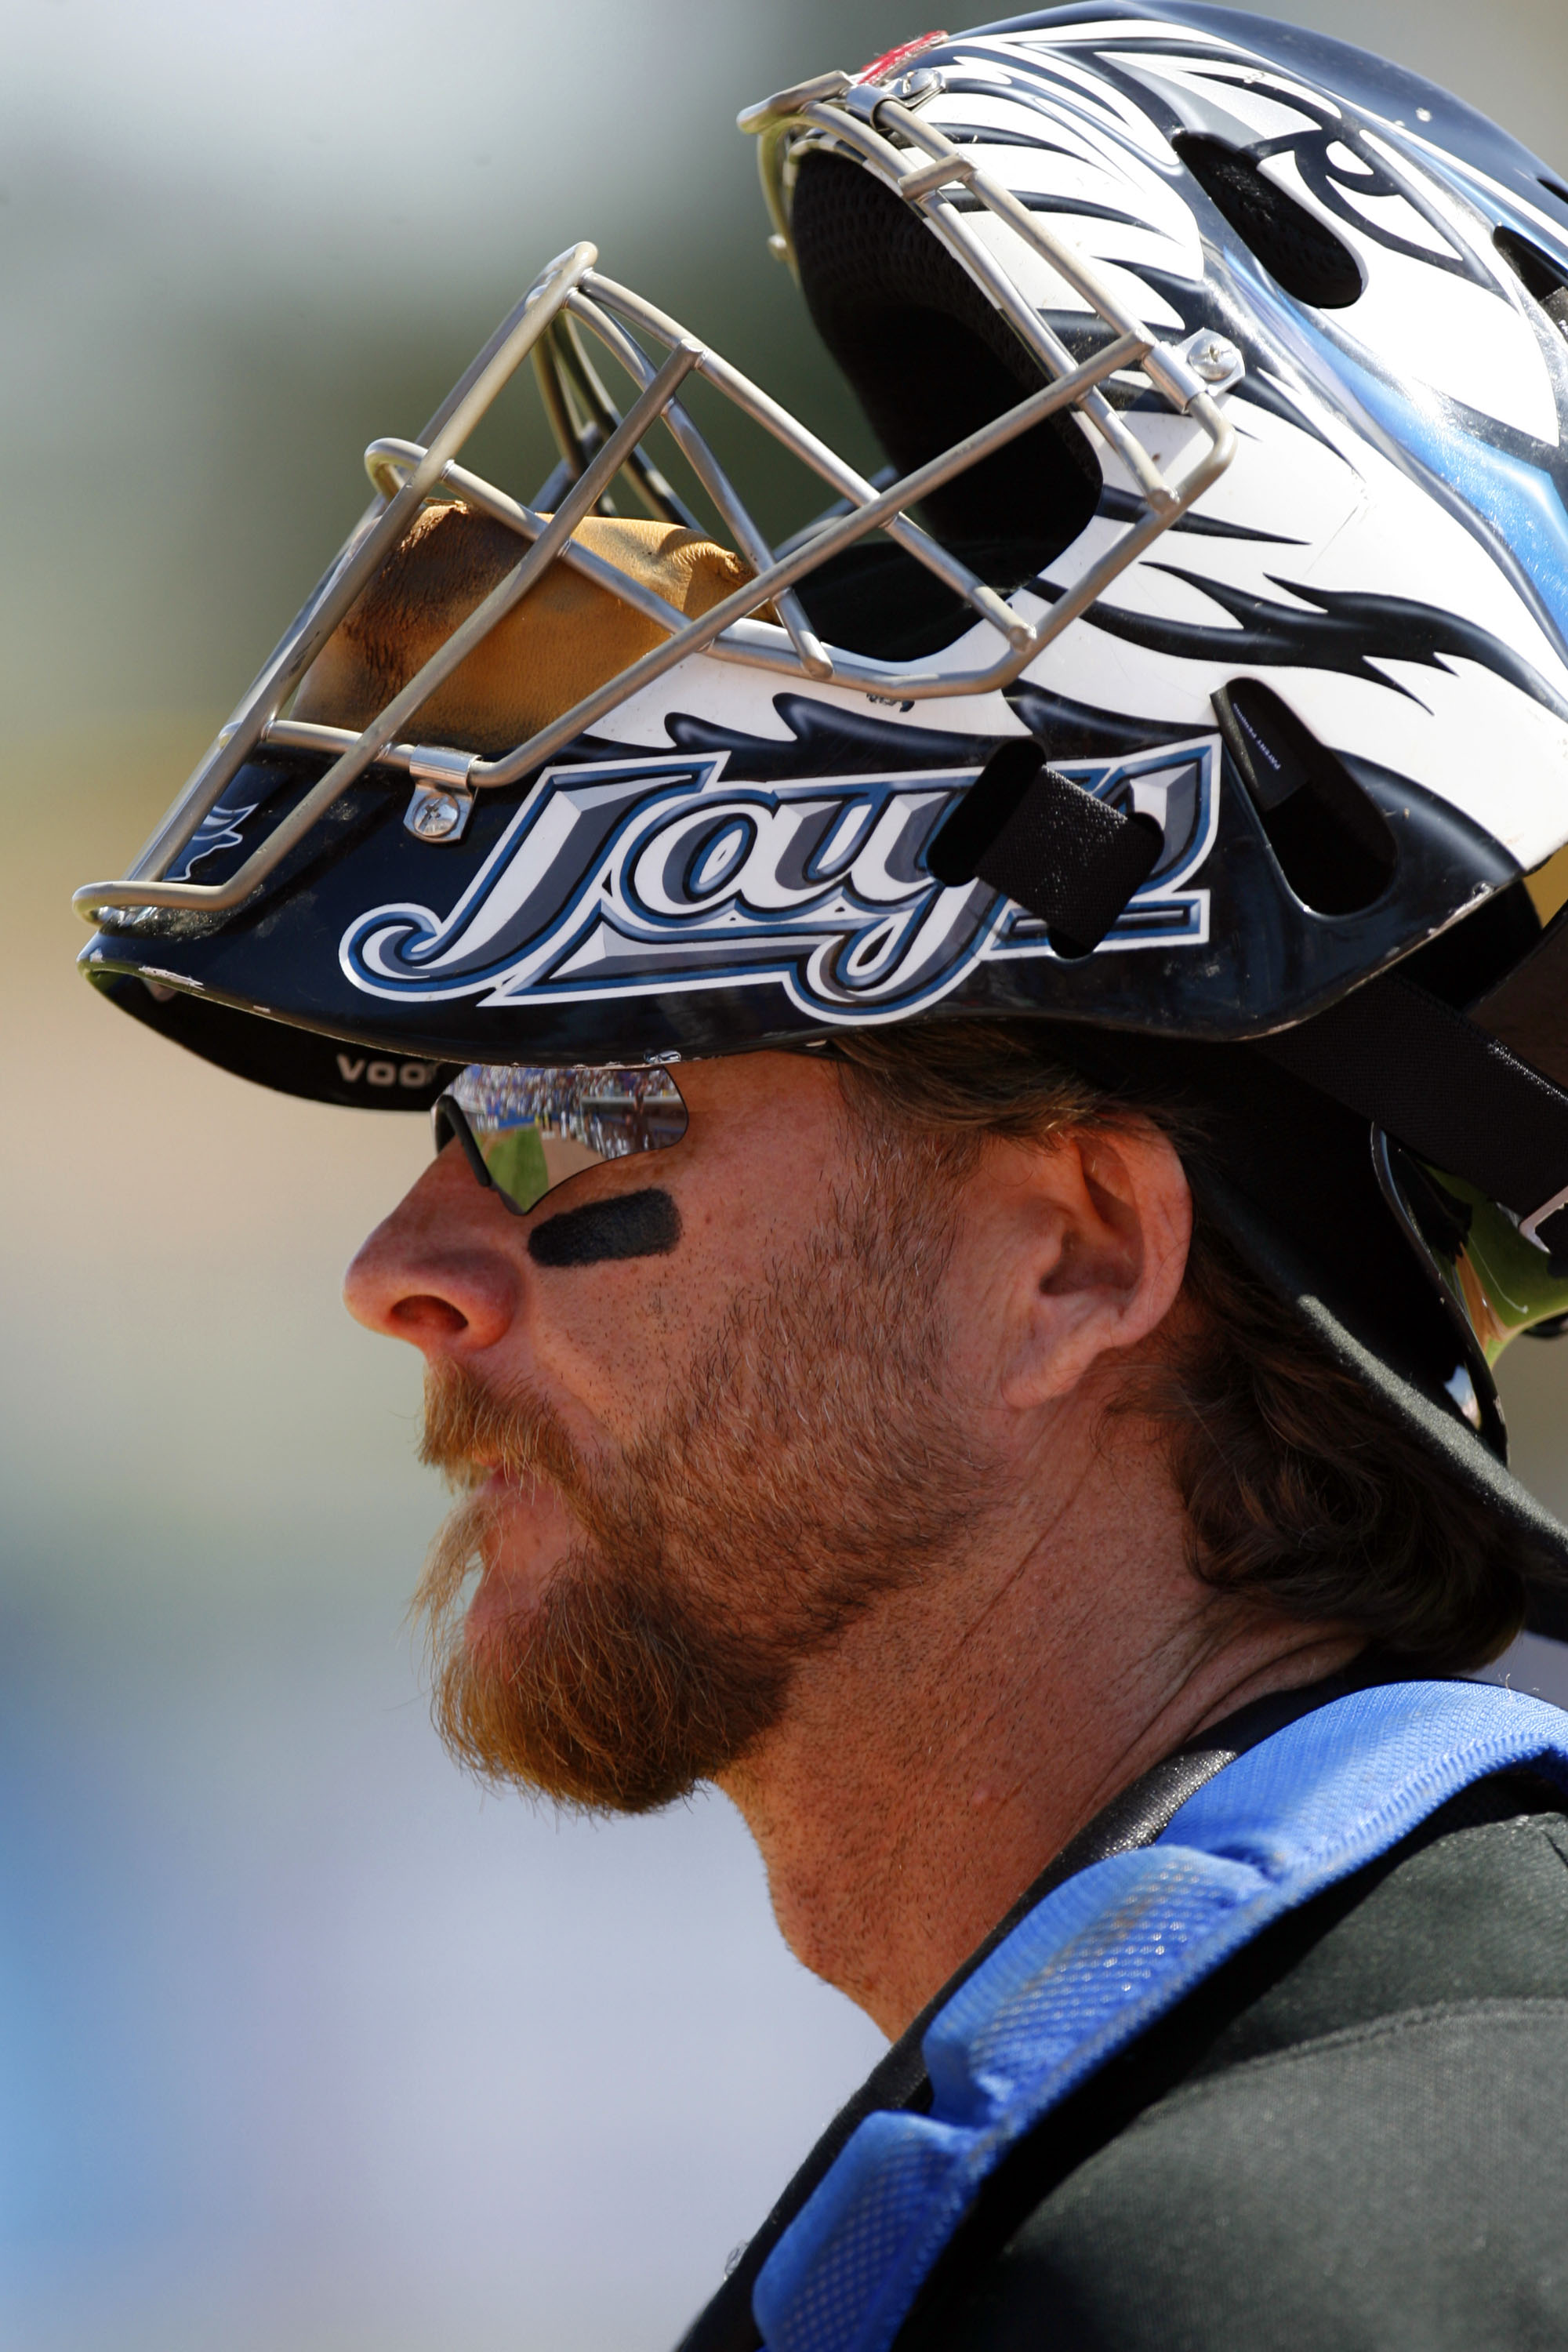 DUNEDIN, FL - MARCH 2: Catcher Gregg Zaun #9 of the Toronto Blue Jays walks on the field prior to playing the Cincinnati Reds during a Spring Training game at Knology Park on March 2, 2008 in Dunedin, Florida. (Photo by Eliot J. Schechter/Getty Images)